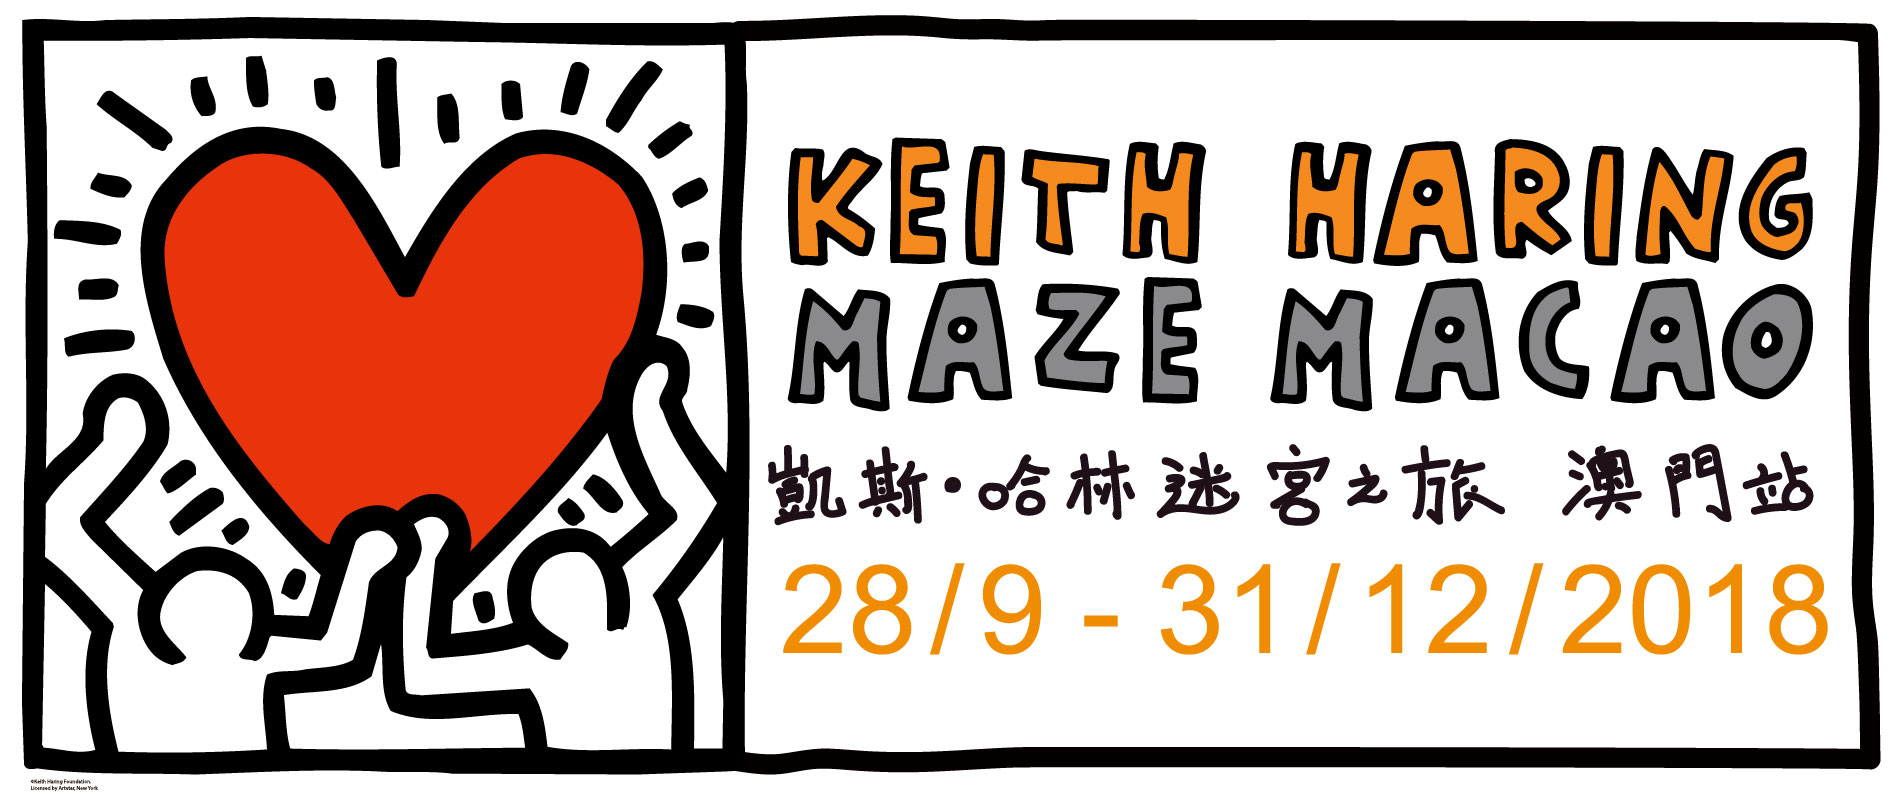 dc106239f8f330 Keith Haring Maze Macao | Entertainment | The Venetian Macao